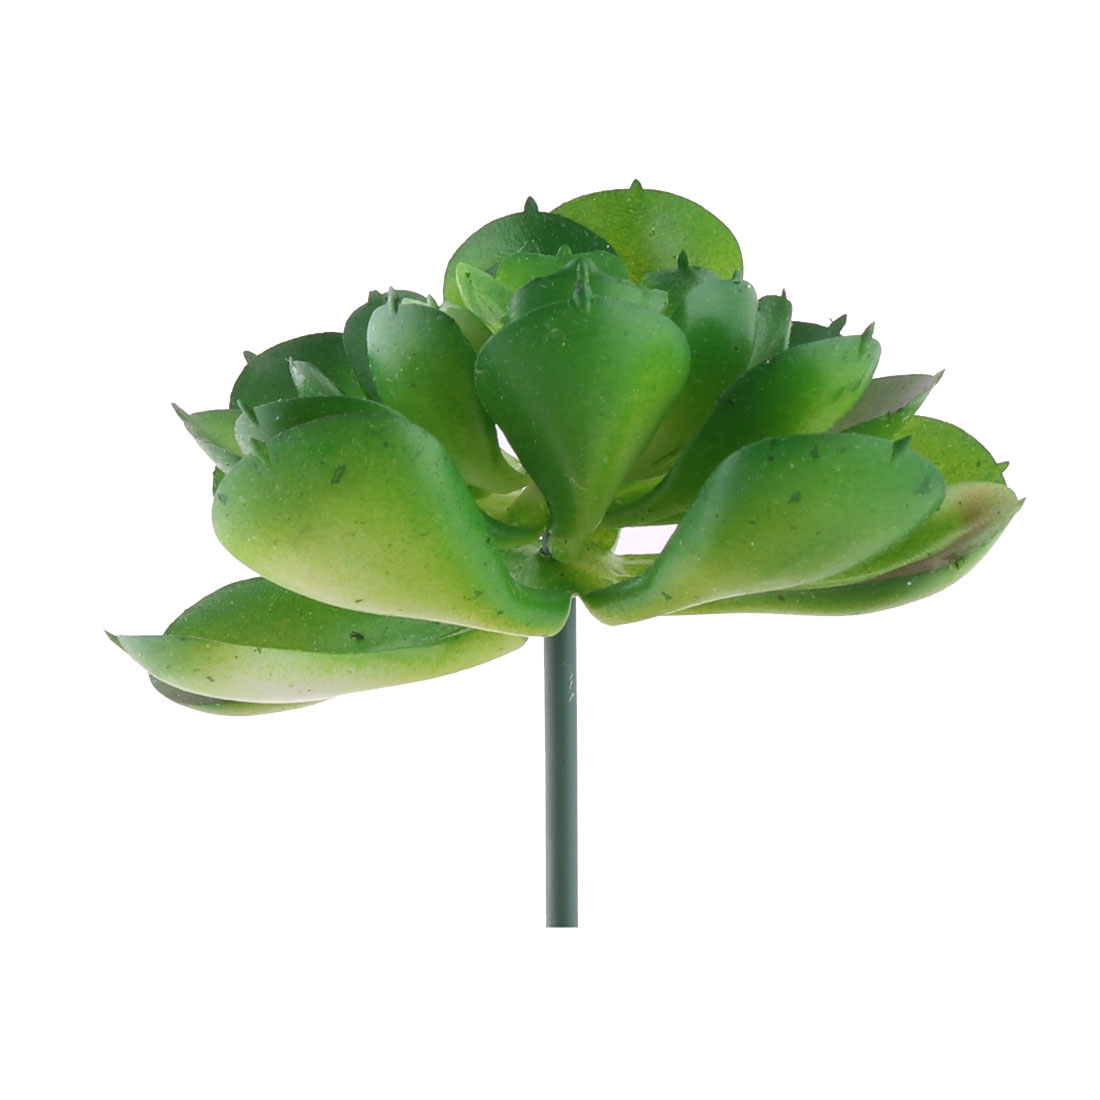 Home Counter Plastic DIY Artificial Emulational Succulent Plant 2.3 Inches Dia